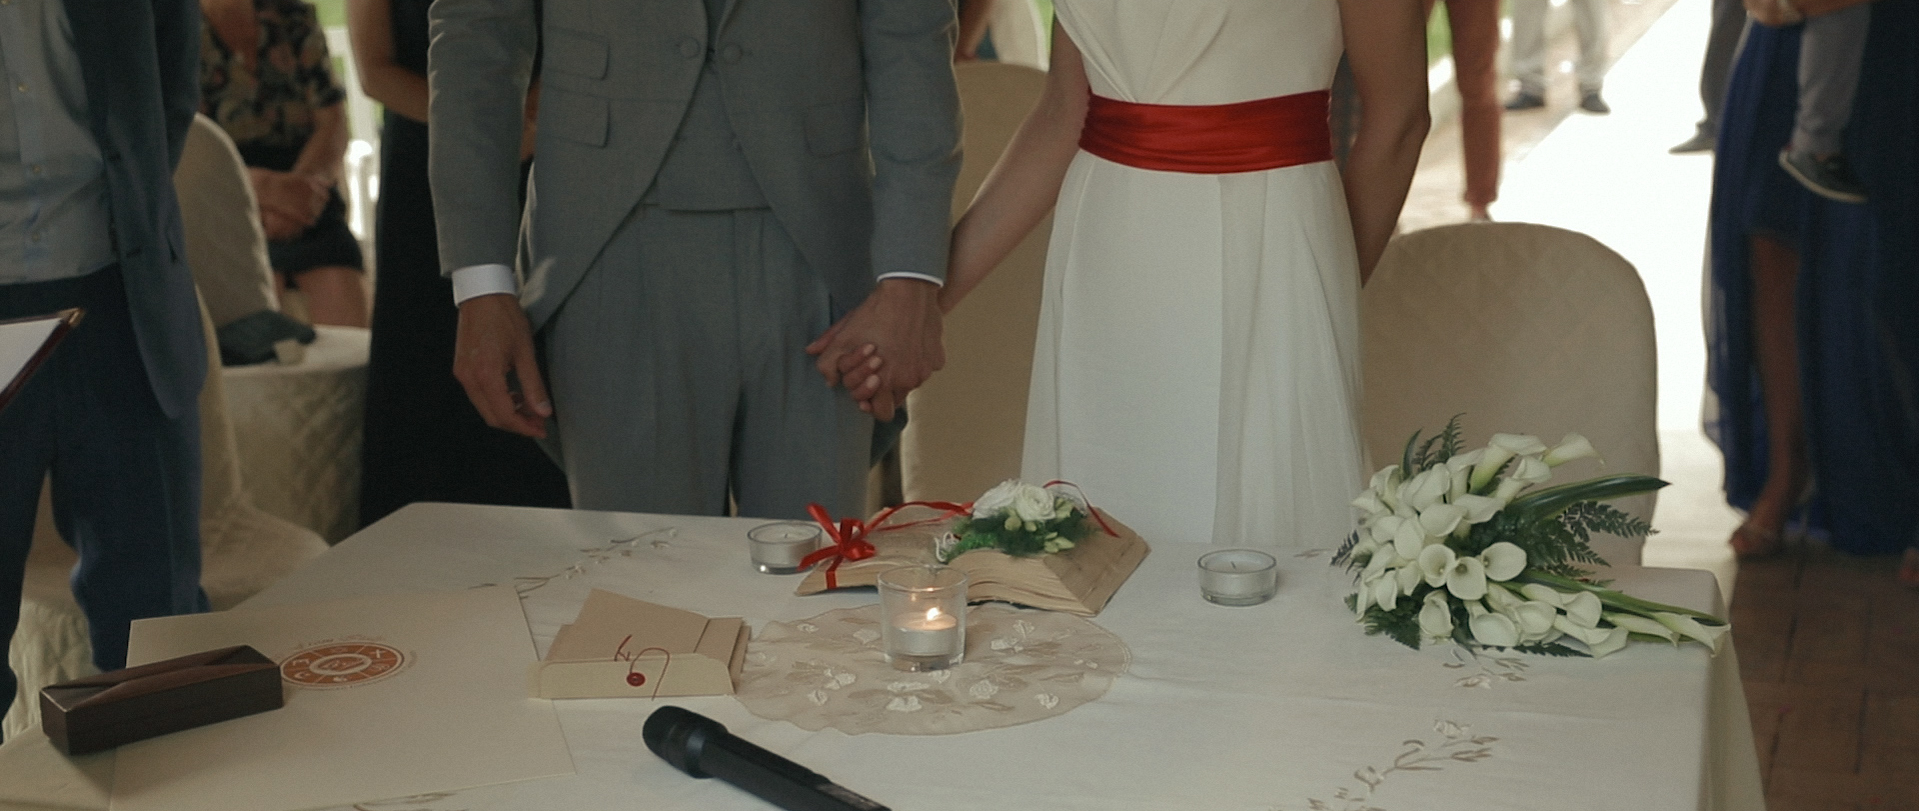 Intimate wedding video in rome 6